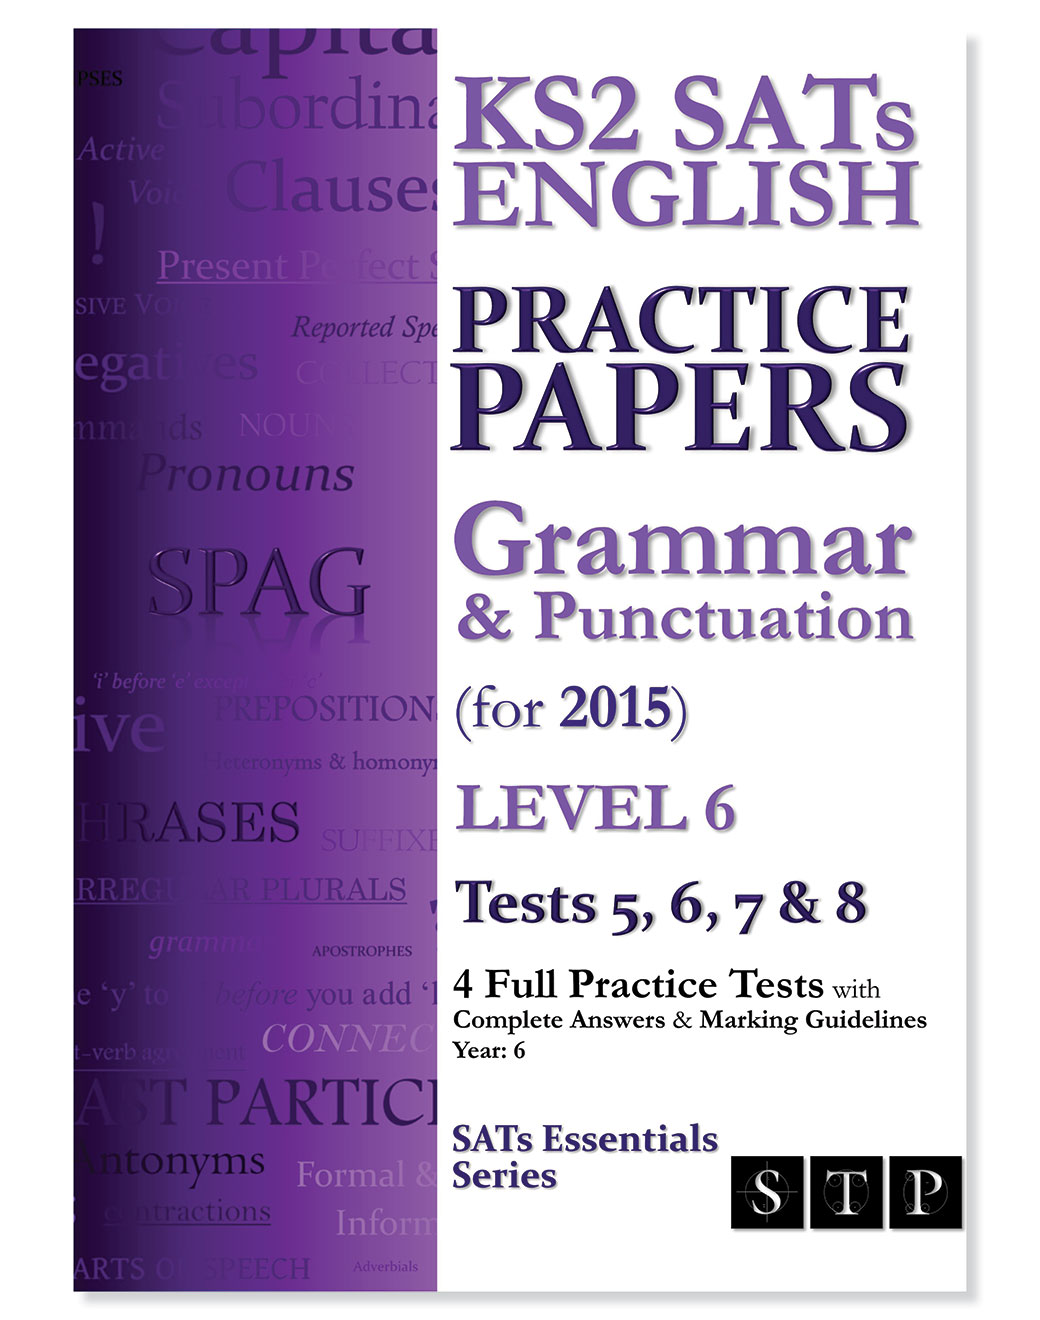 STP Books KS2 SATs English Practice Papers: Grammar & Punctuation (for 2015) Level 6: Tests 5, 6, 7 & 8